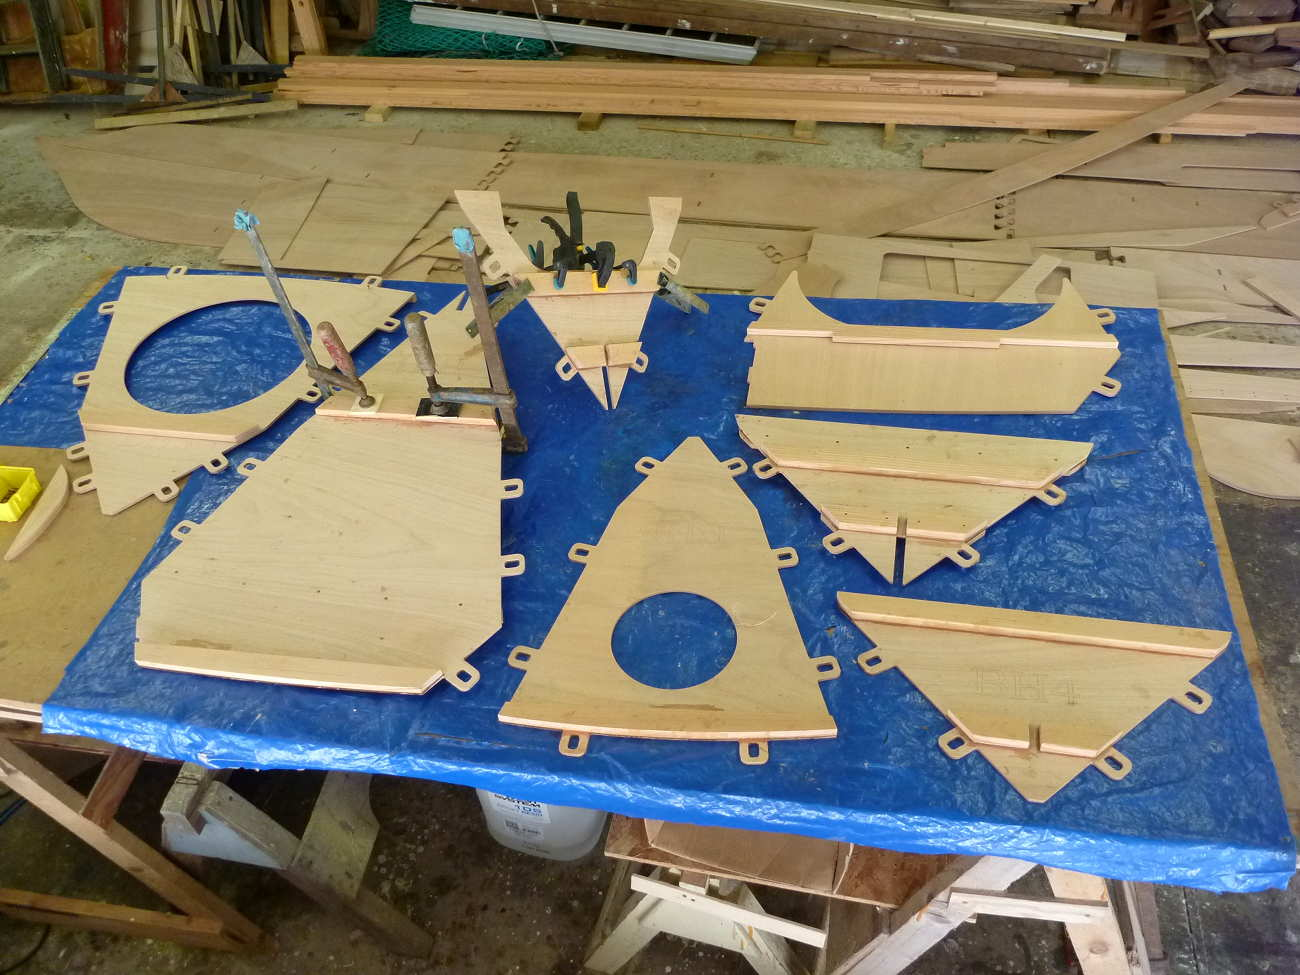 Mana 24 pre-cut plywood parts on a work bench